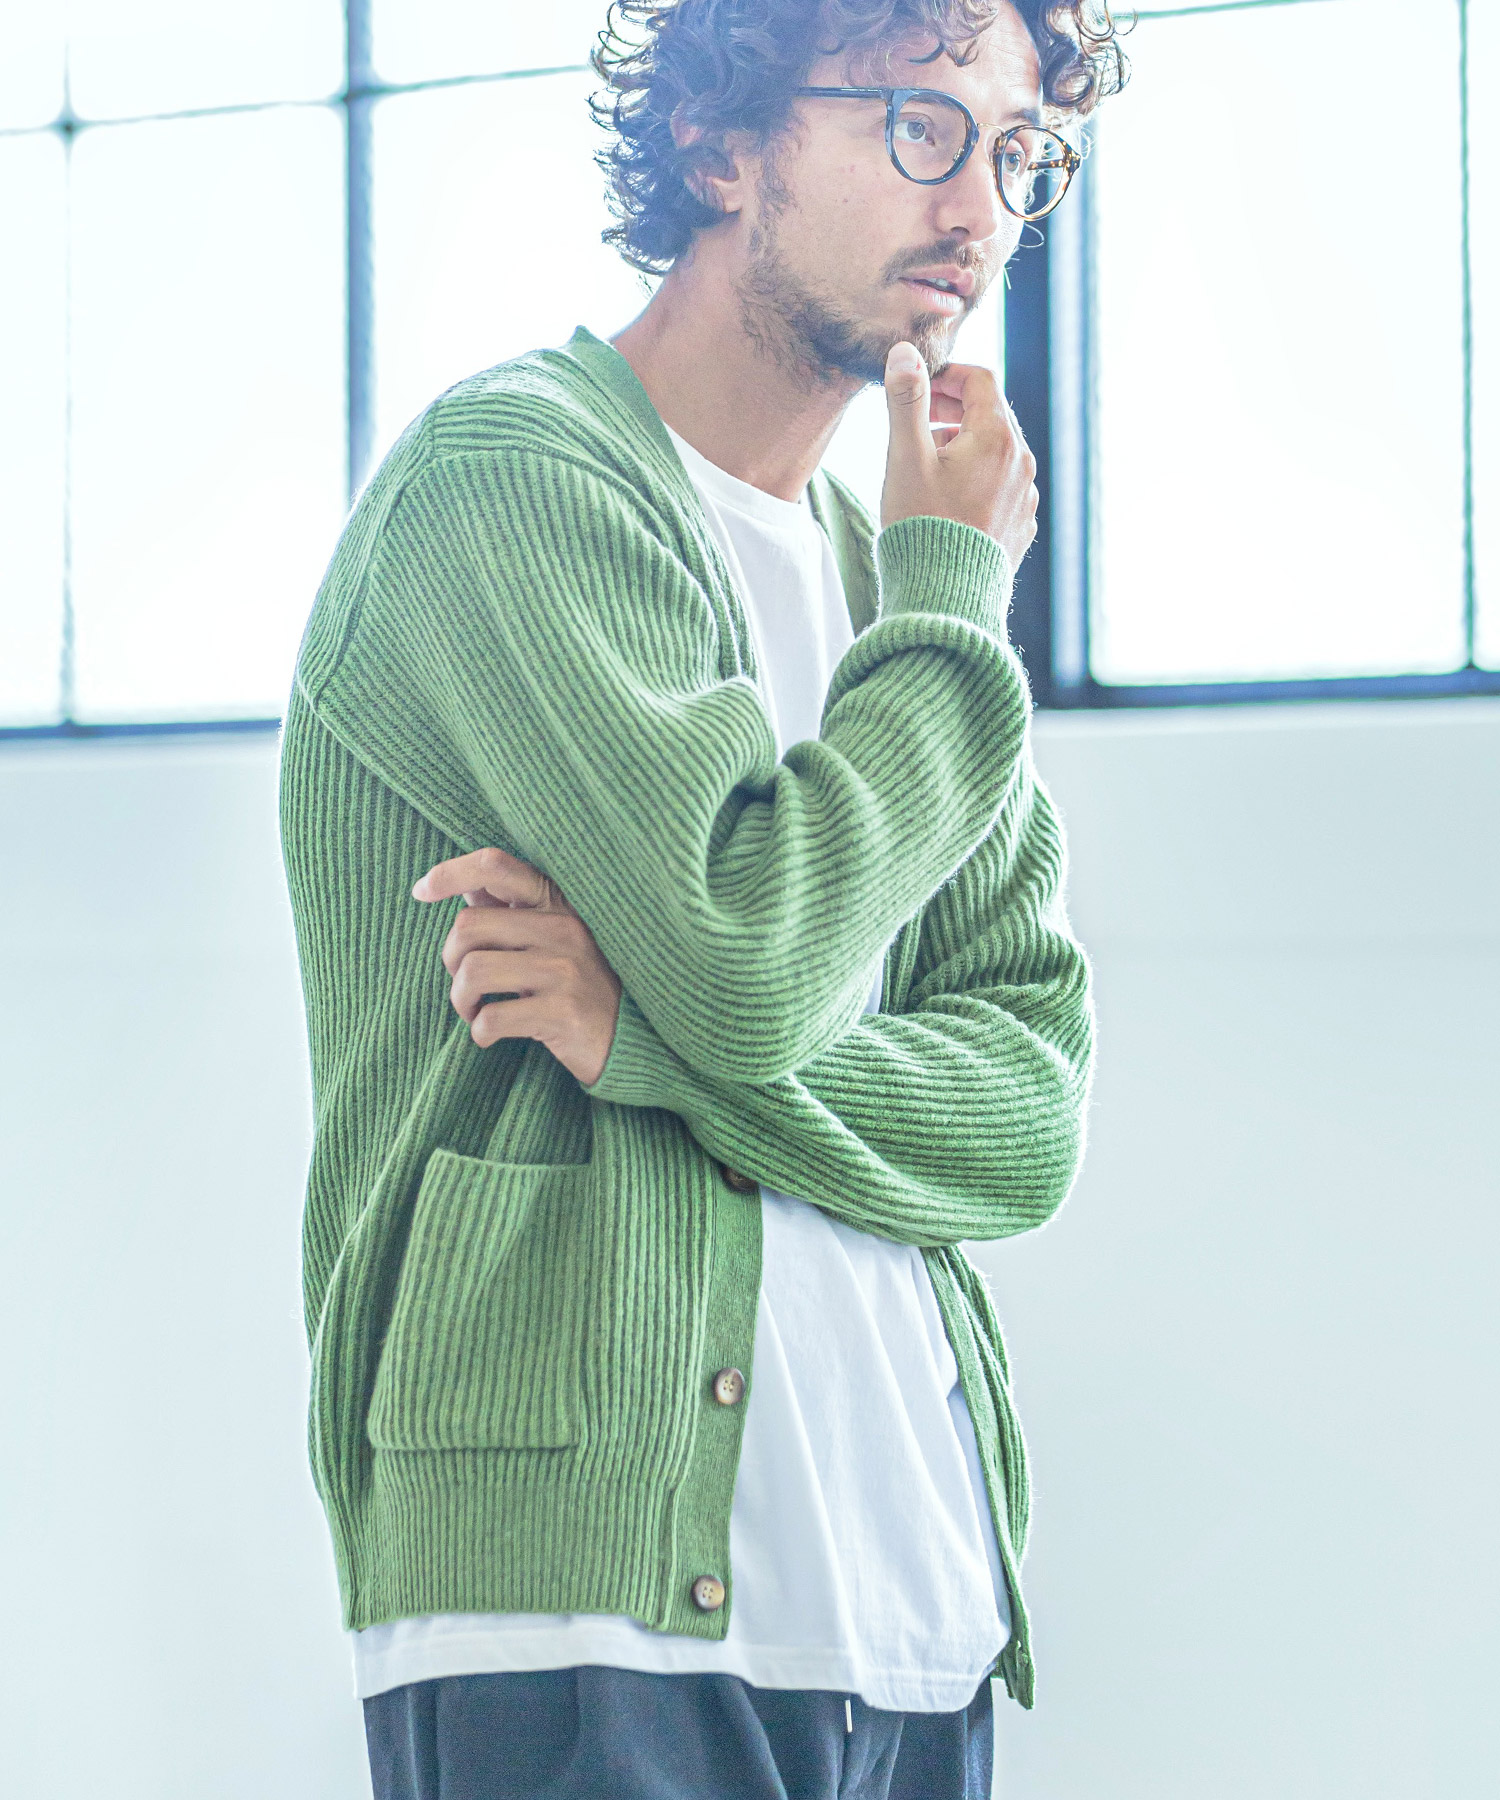 【ANGENEHM(アンゲネーム)】【予約販売10月中旬~下旬入荷】Wall Thickness Wool Knit Cardigan(MADE IN JAPAN) カーディガン